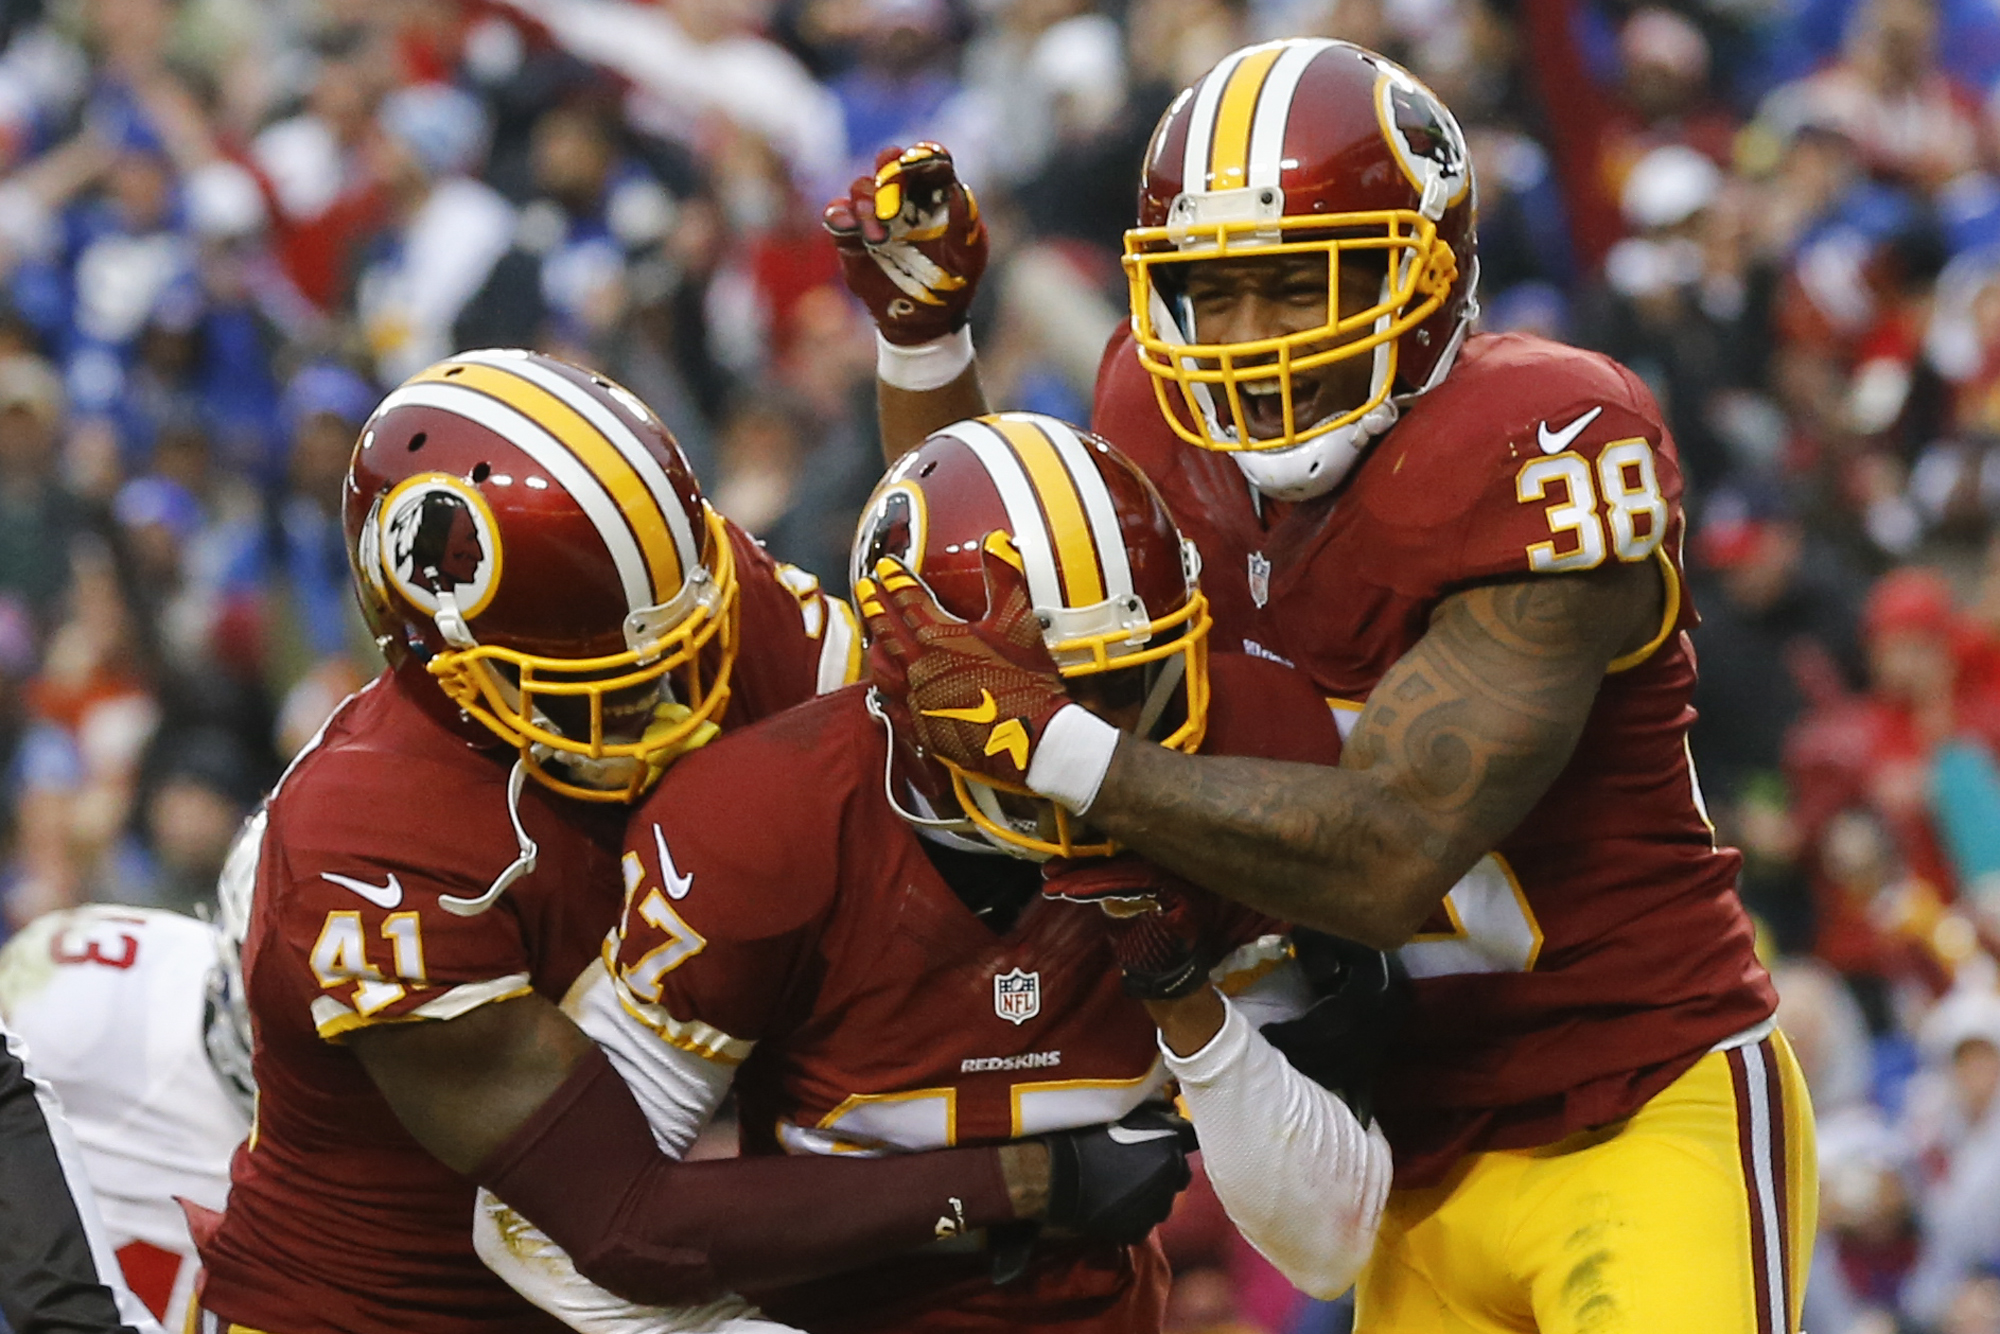 Washington Redskins cornerback Quinton Dunbar, center, is mobbed by his teammates cornerback Will Blackmon (41) and free safety Dashon Goldson (38) after he intercepted a pass in the end zone intended for New York Giants wide receiver Rueben Randle during